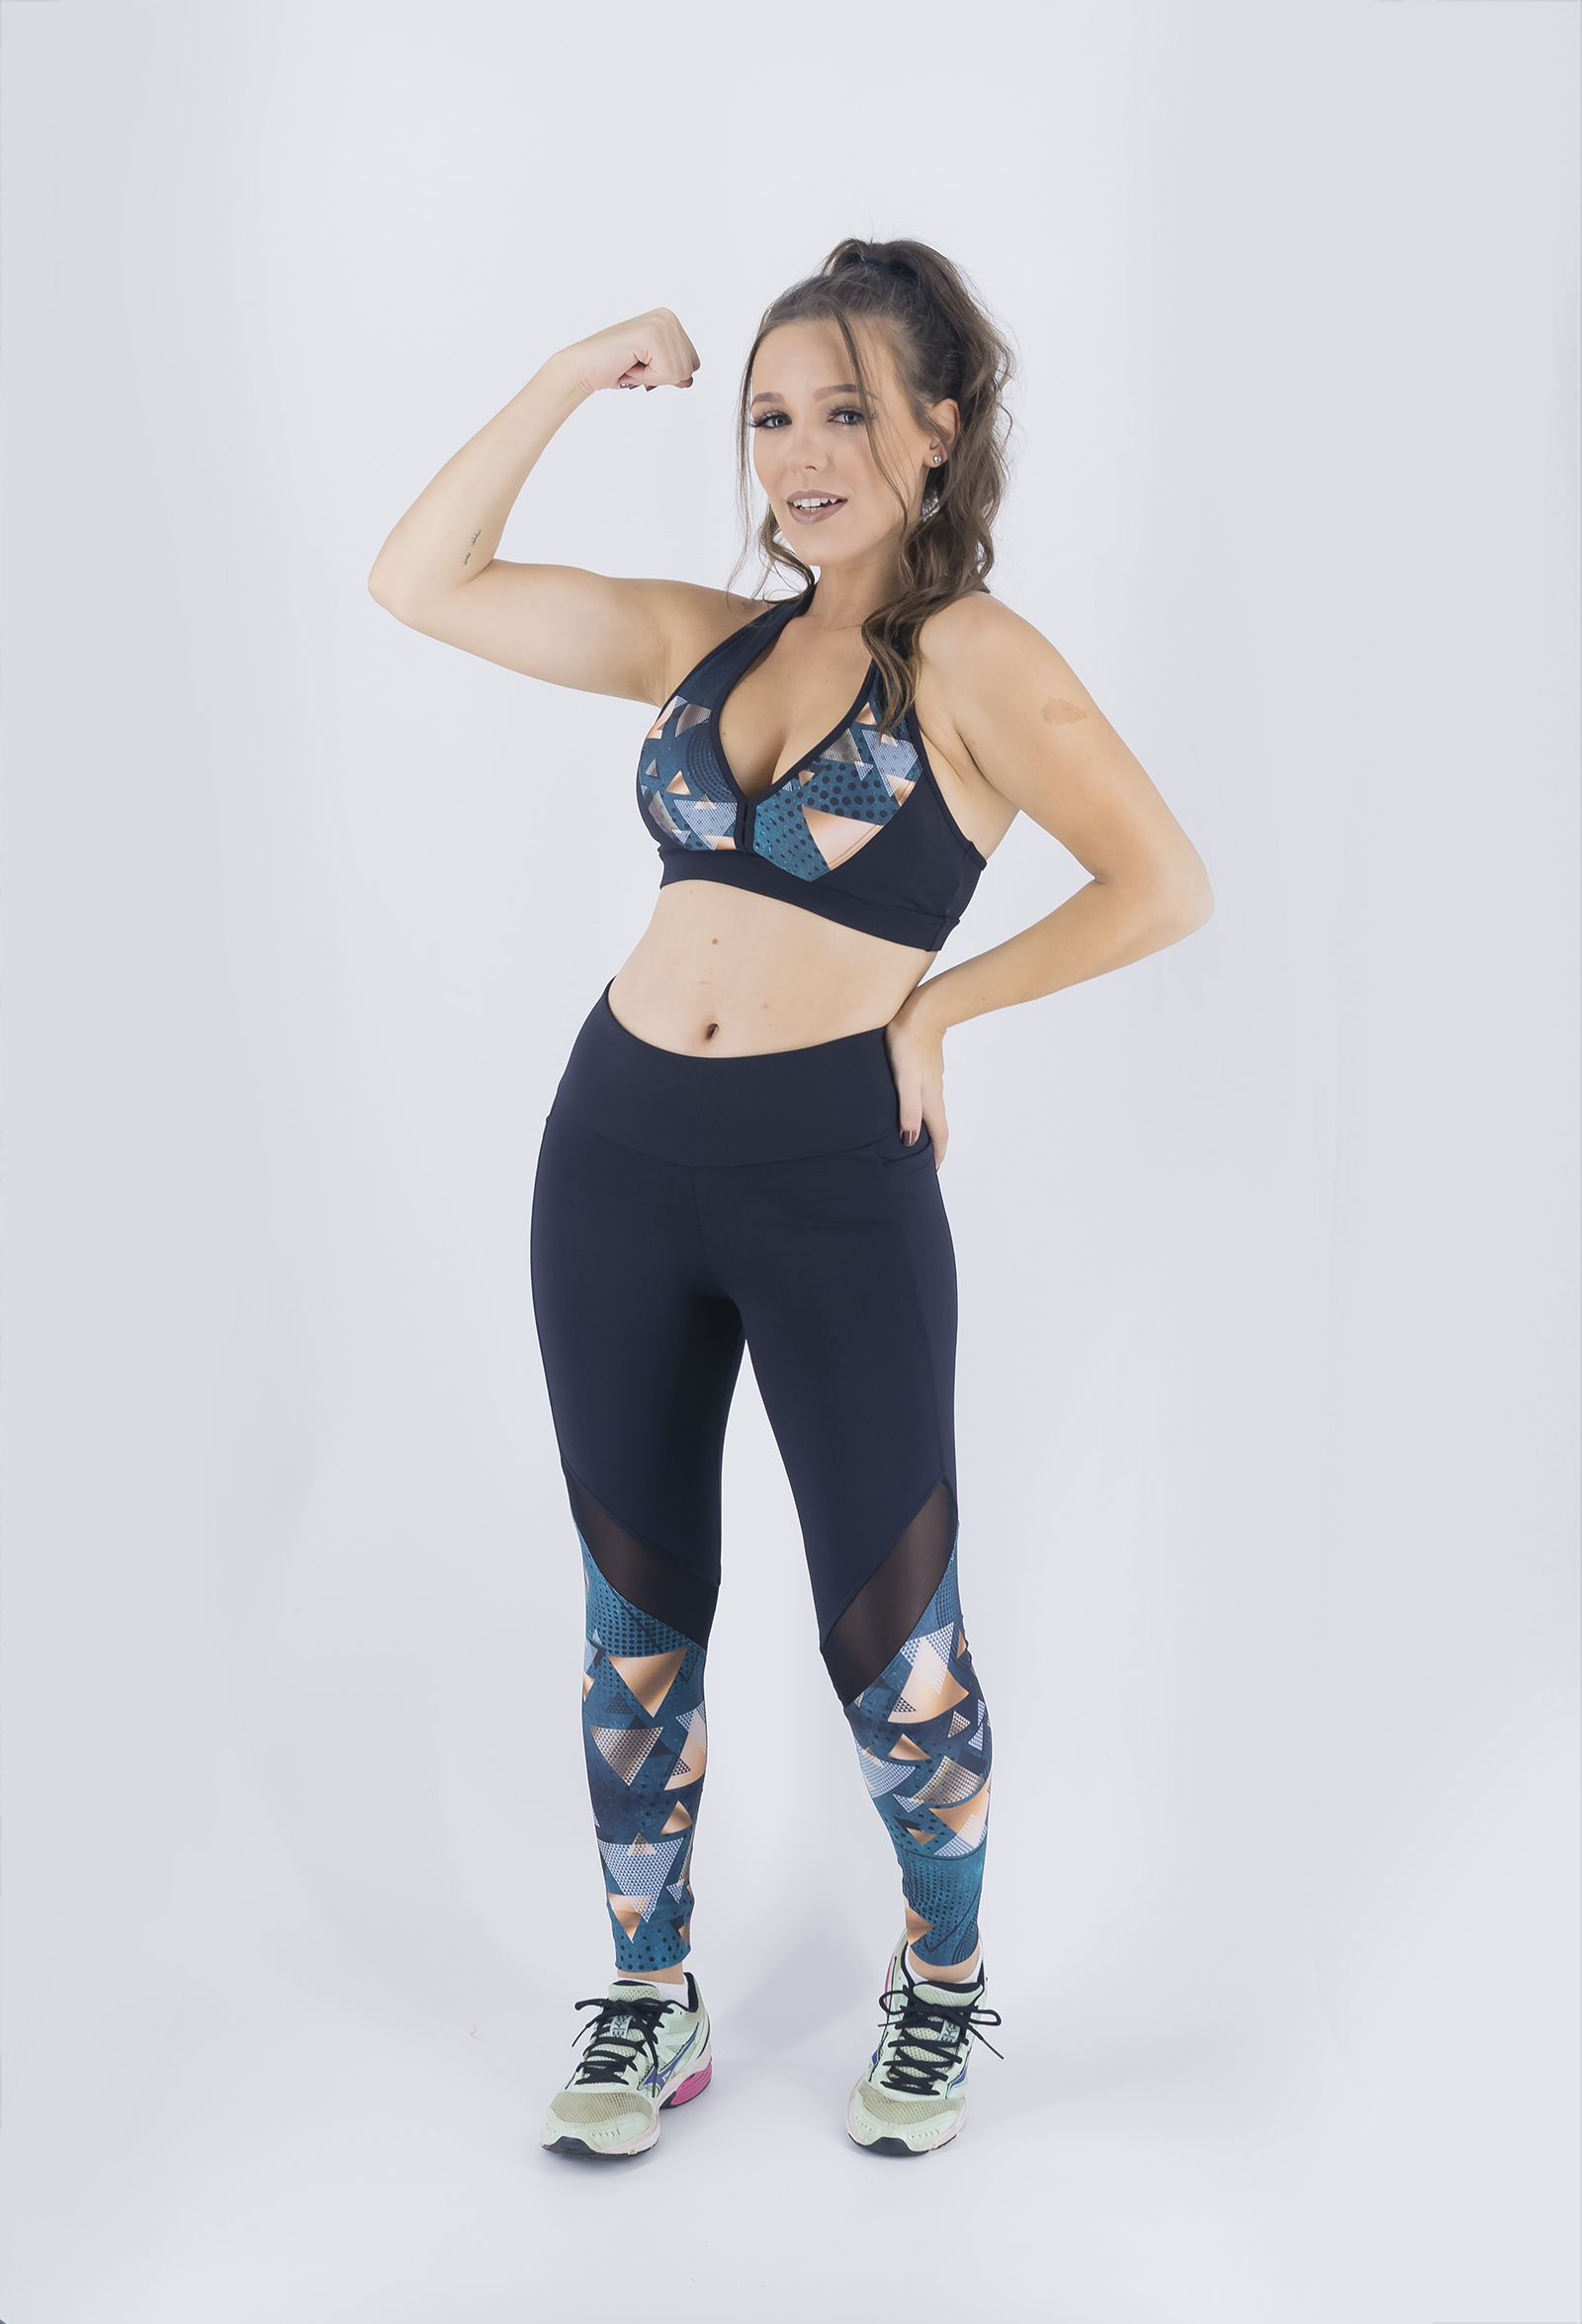 Legging Set Místico, Coleção Just For You - NKT Fitwear Moda Fitness